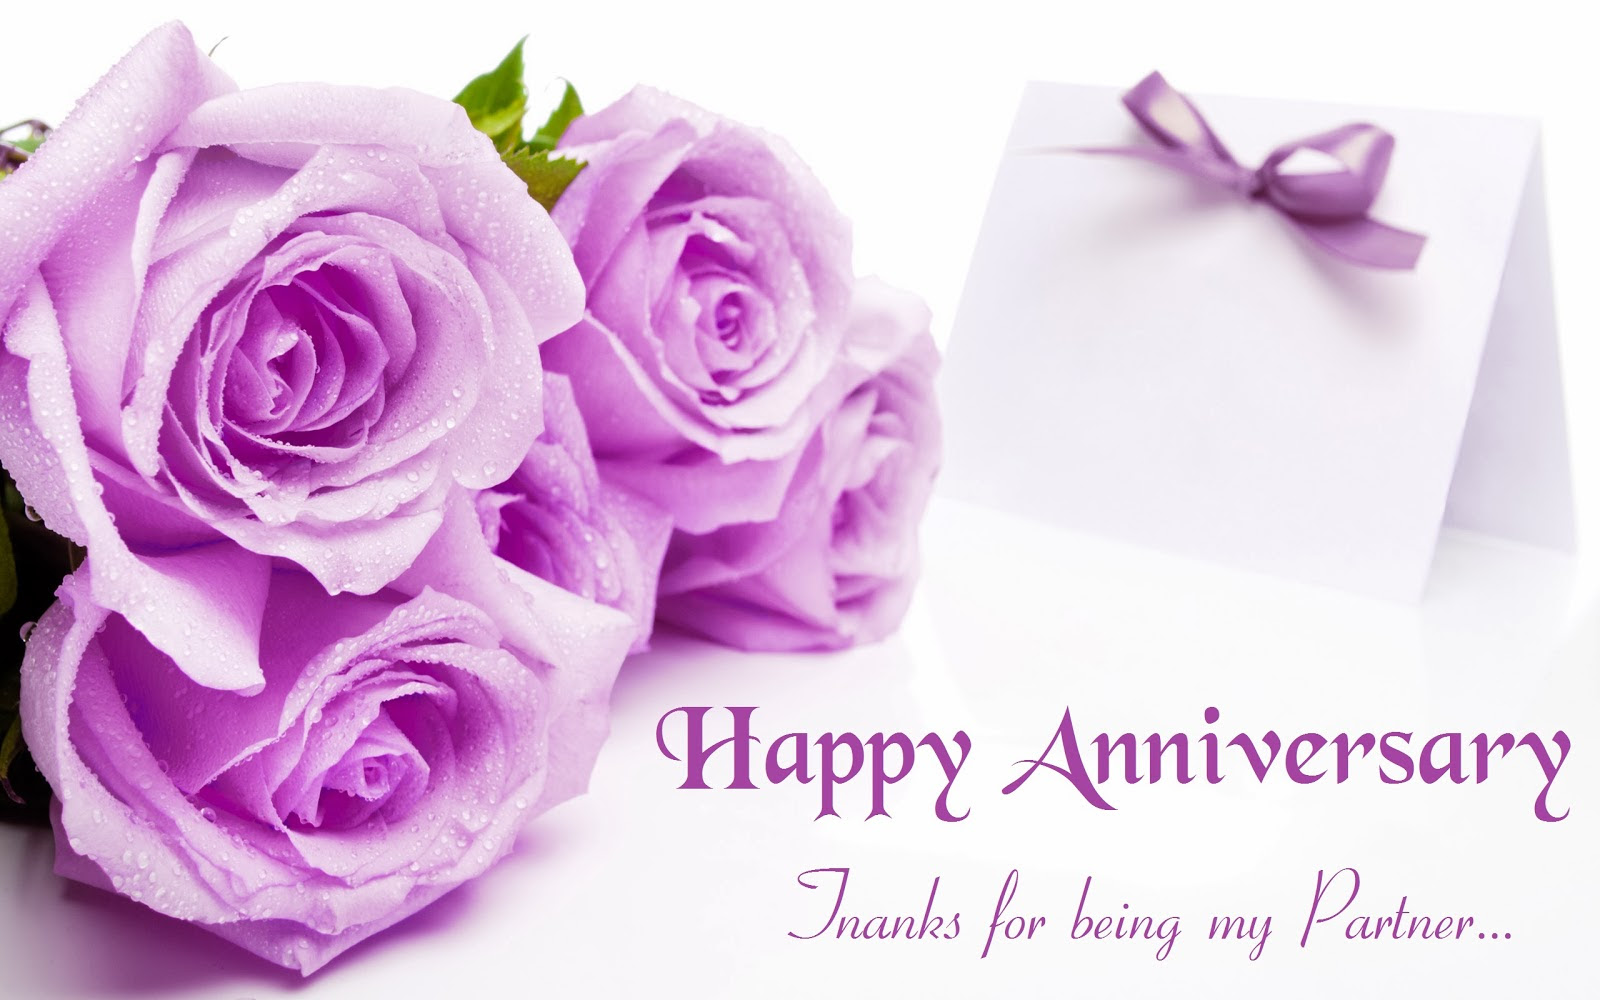 Happy Wedding Anniversary Images Free Download Top Colection For